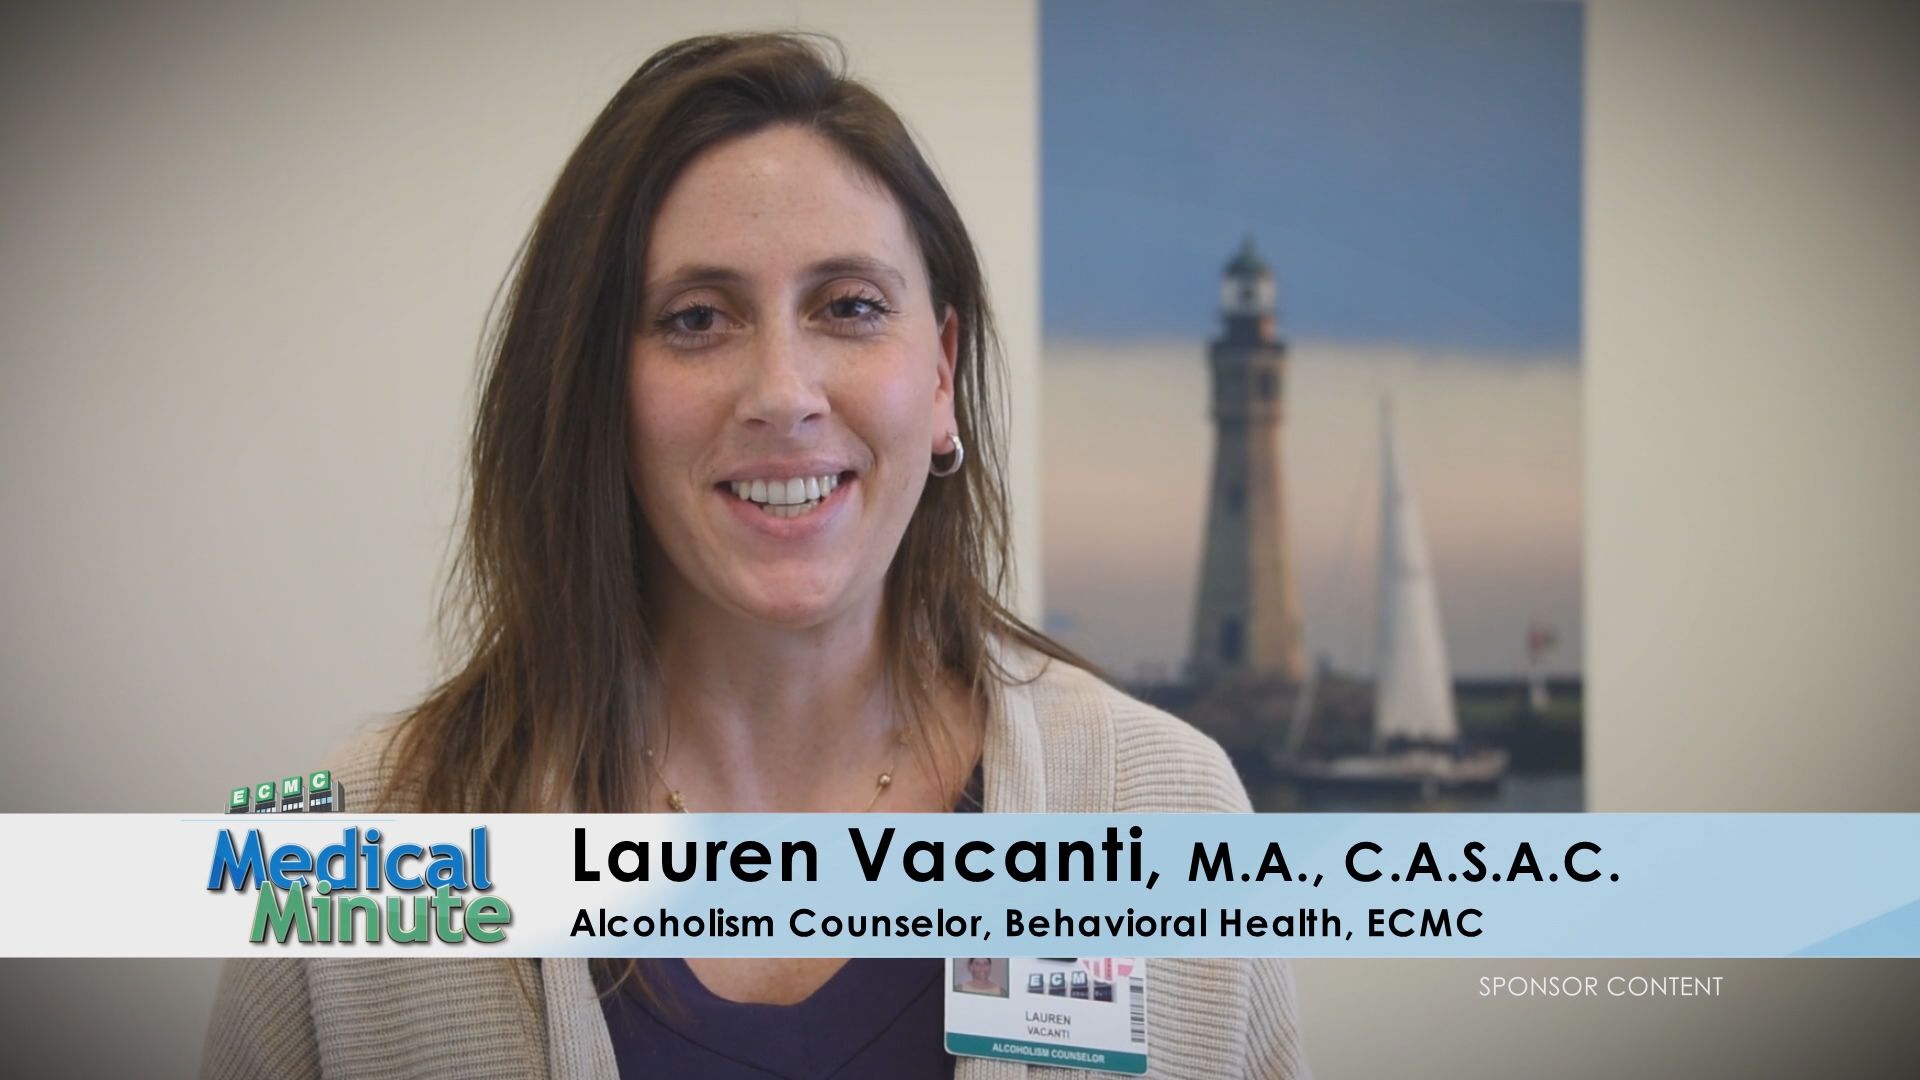 ECMCMedicalMinute LaurenVacanti ChemicalDependency NatRecoveryMonth 091619 STILL